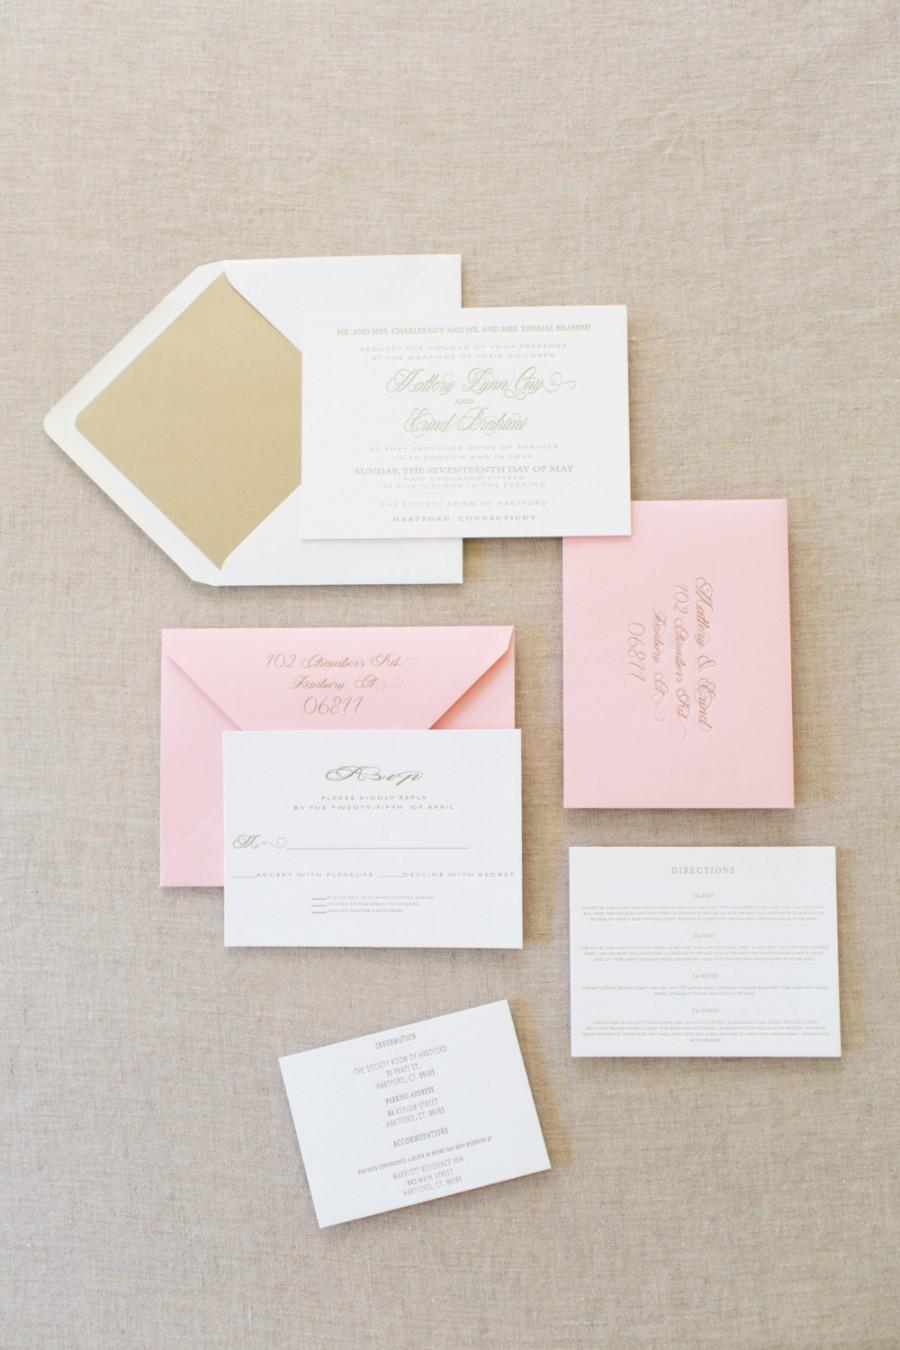 Wedding - Letterpress Gold Elegant Wedding Invitation Suite with Pink Edge Paint